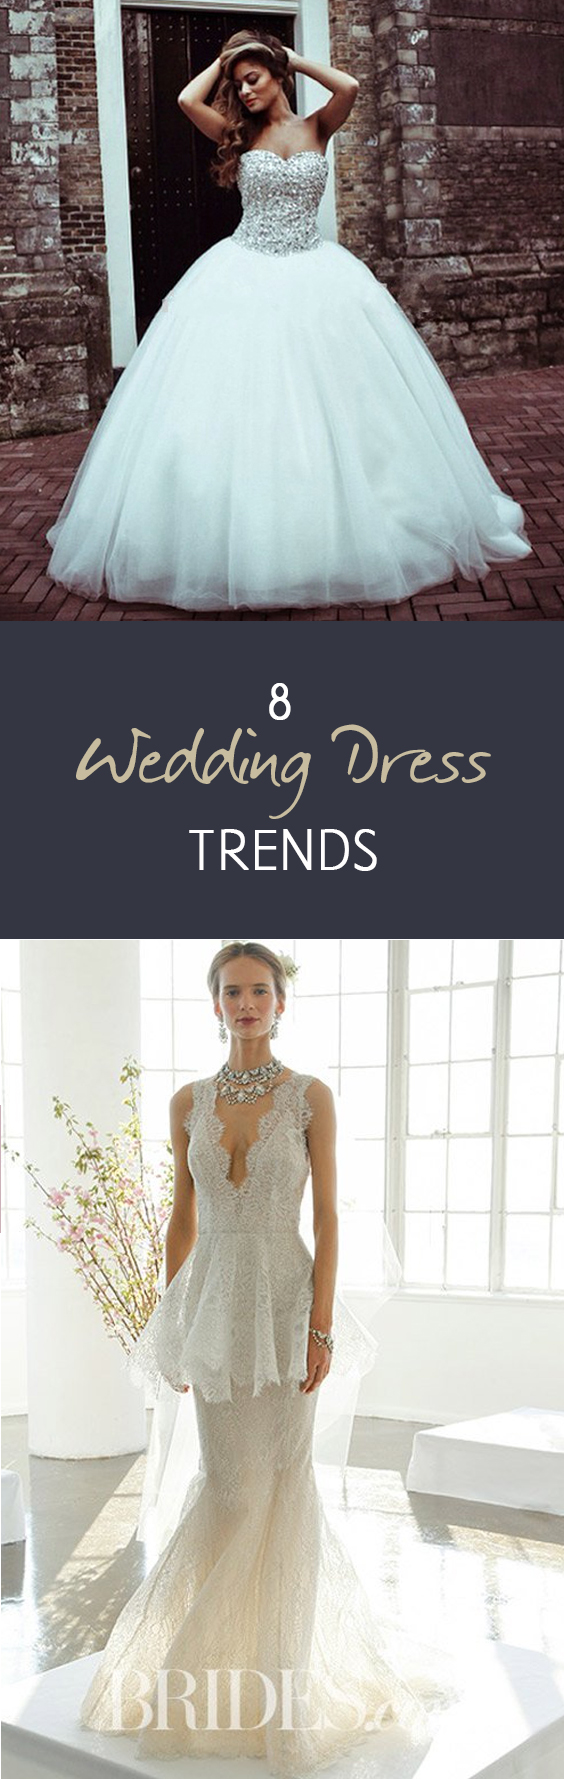 Wedding Dresses, Wedding Dress Trends, Wedding Dress Inspiration, Popular Pin, Dream Weddings, Wedding Fashion, Modest Wedding Dresses.